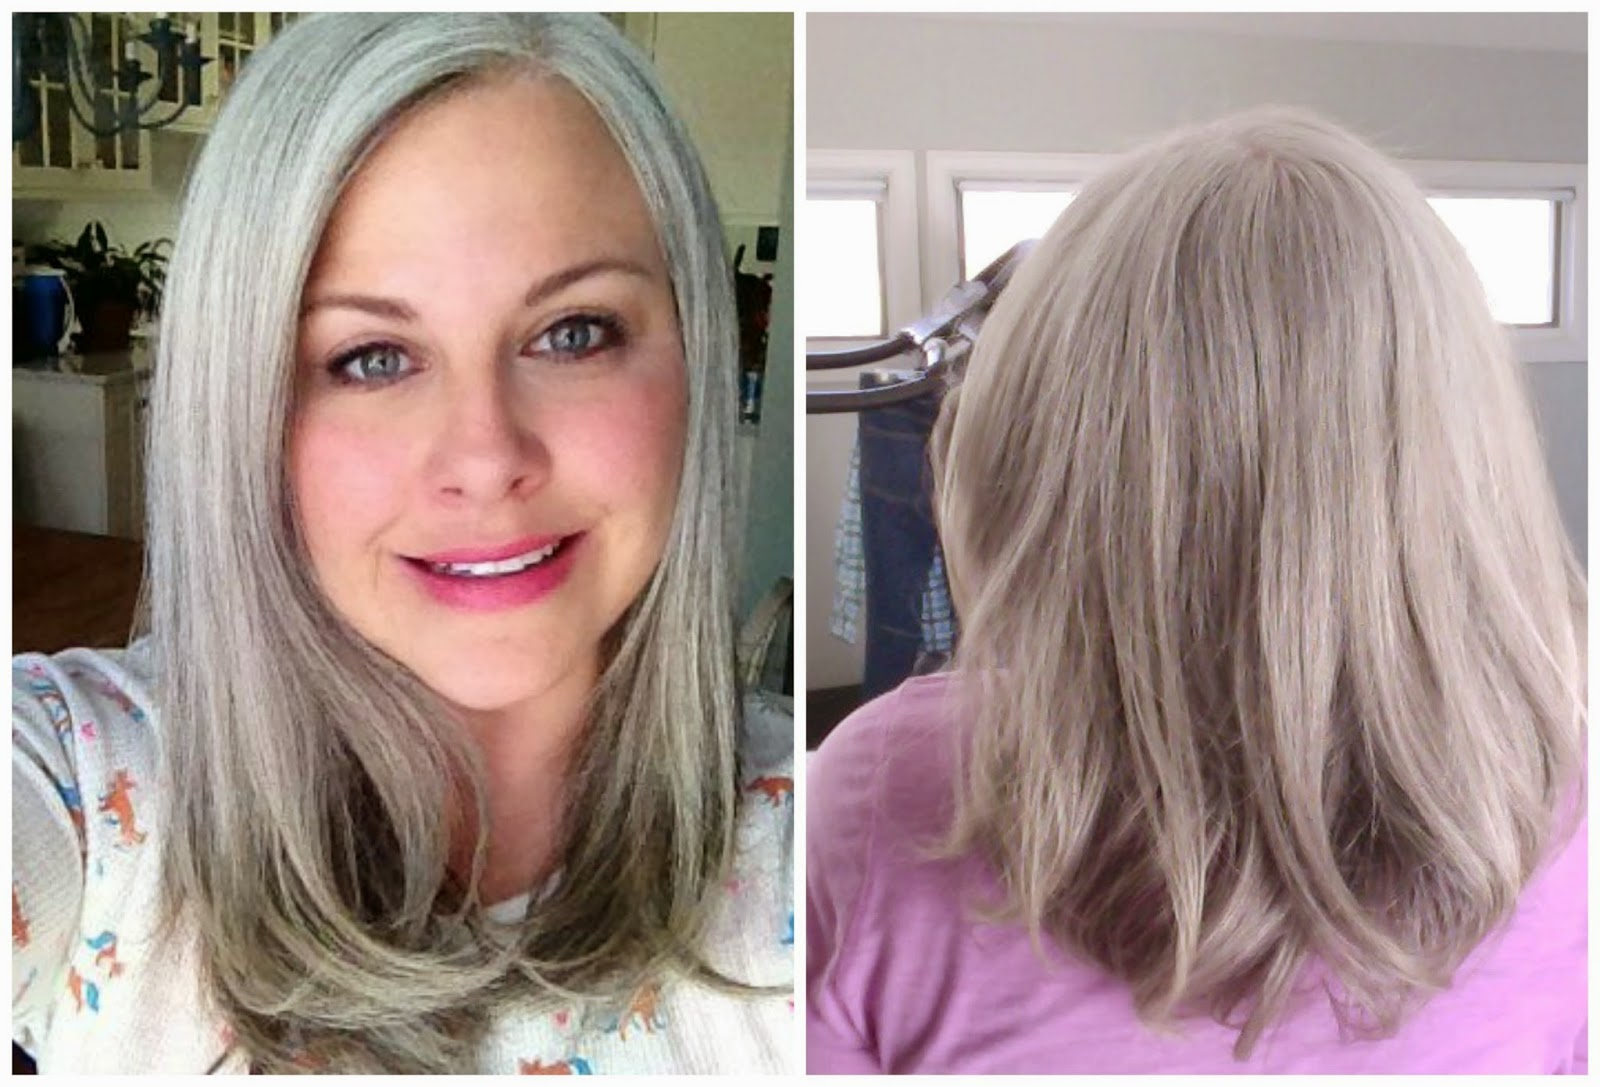 A Gray Hair Product Review Make Up And Other Fun